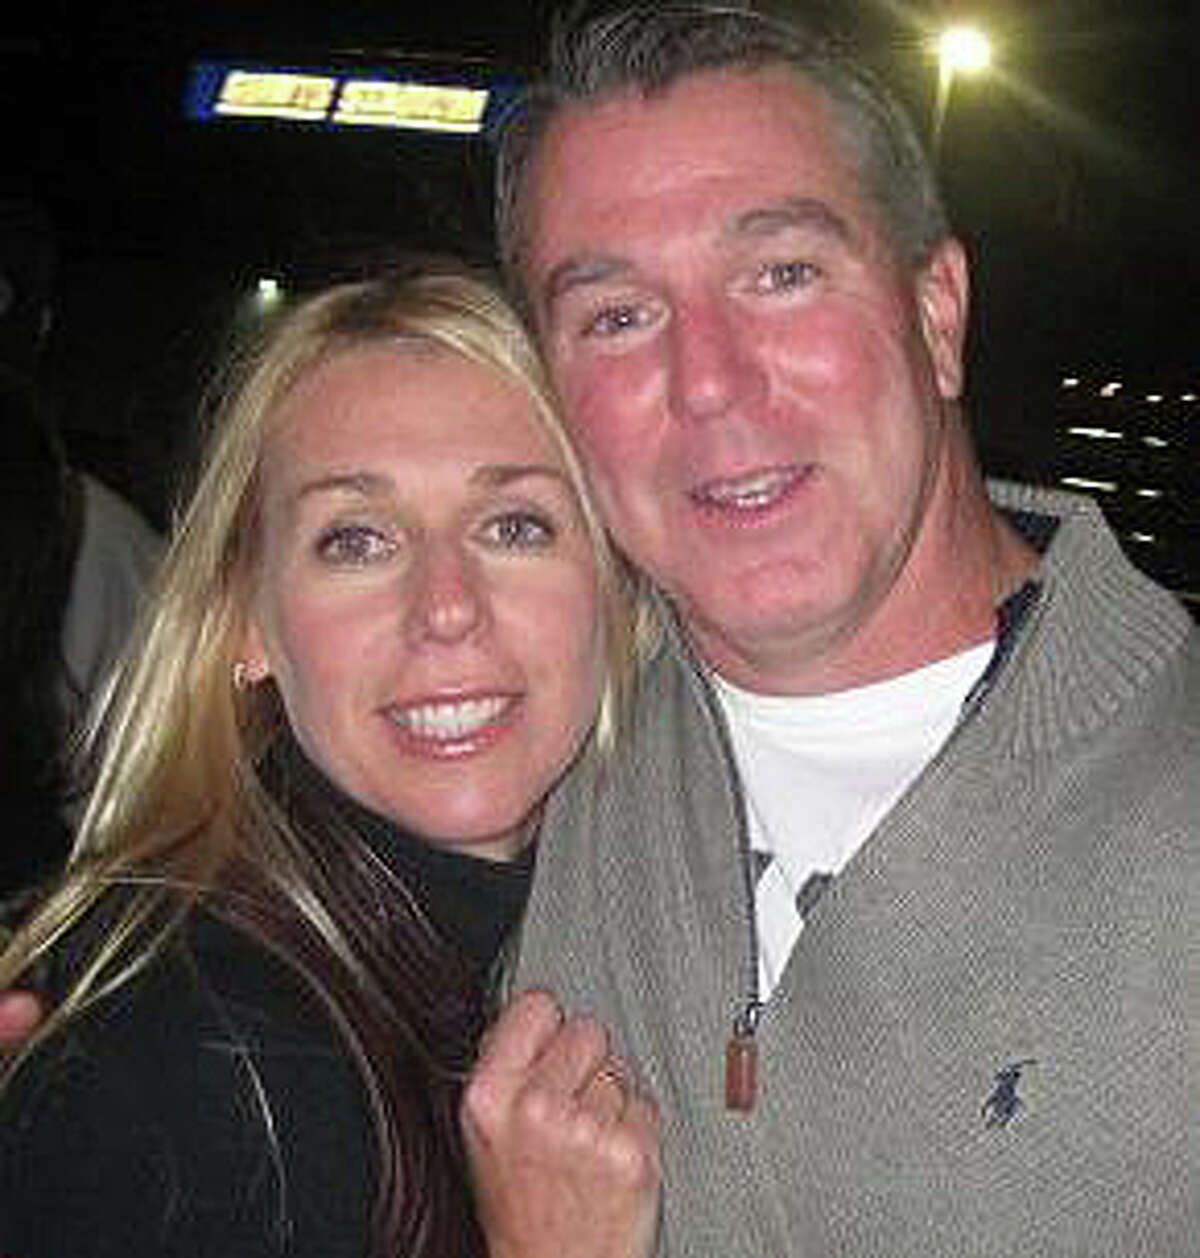 Kathleen and Christopher Andrews from their Facebook page.